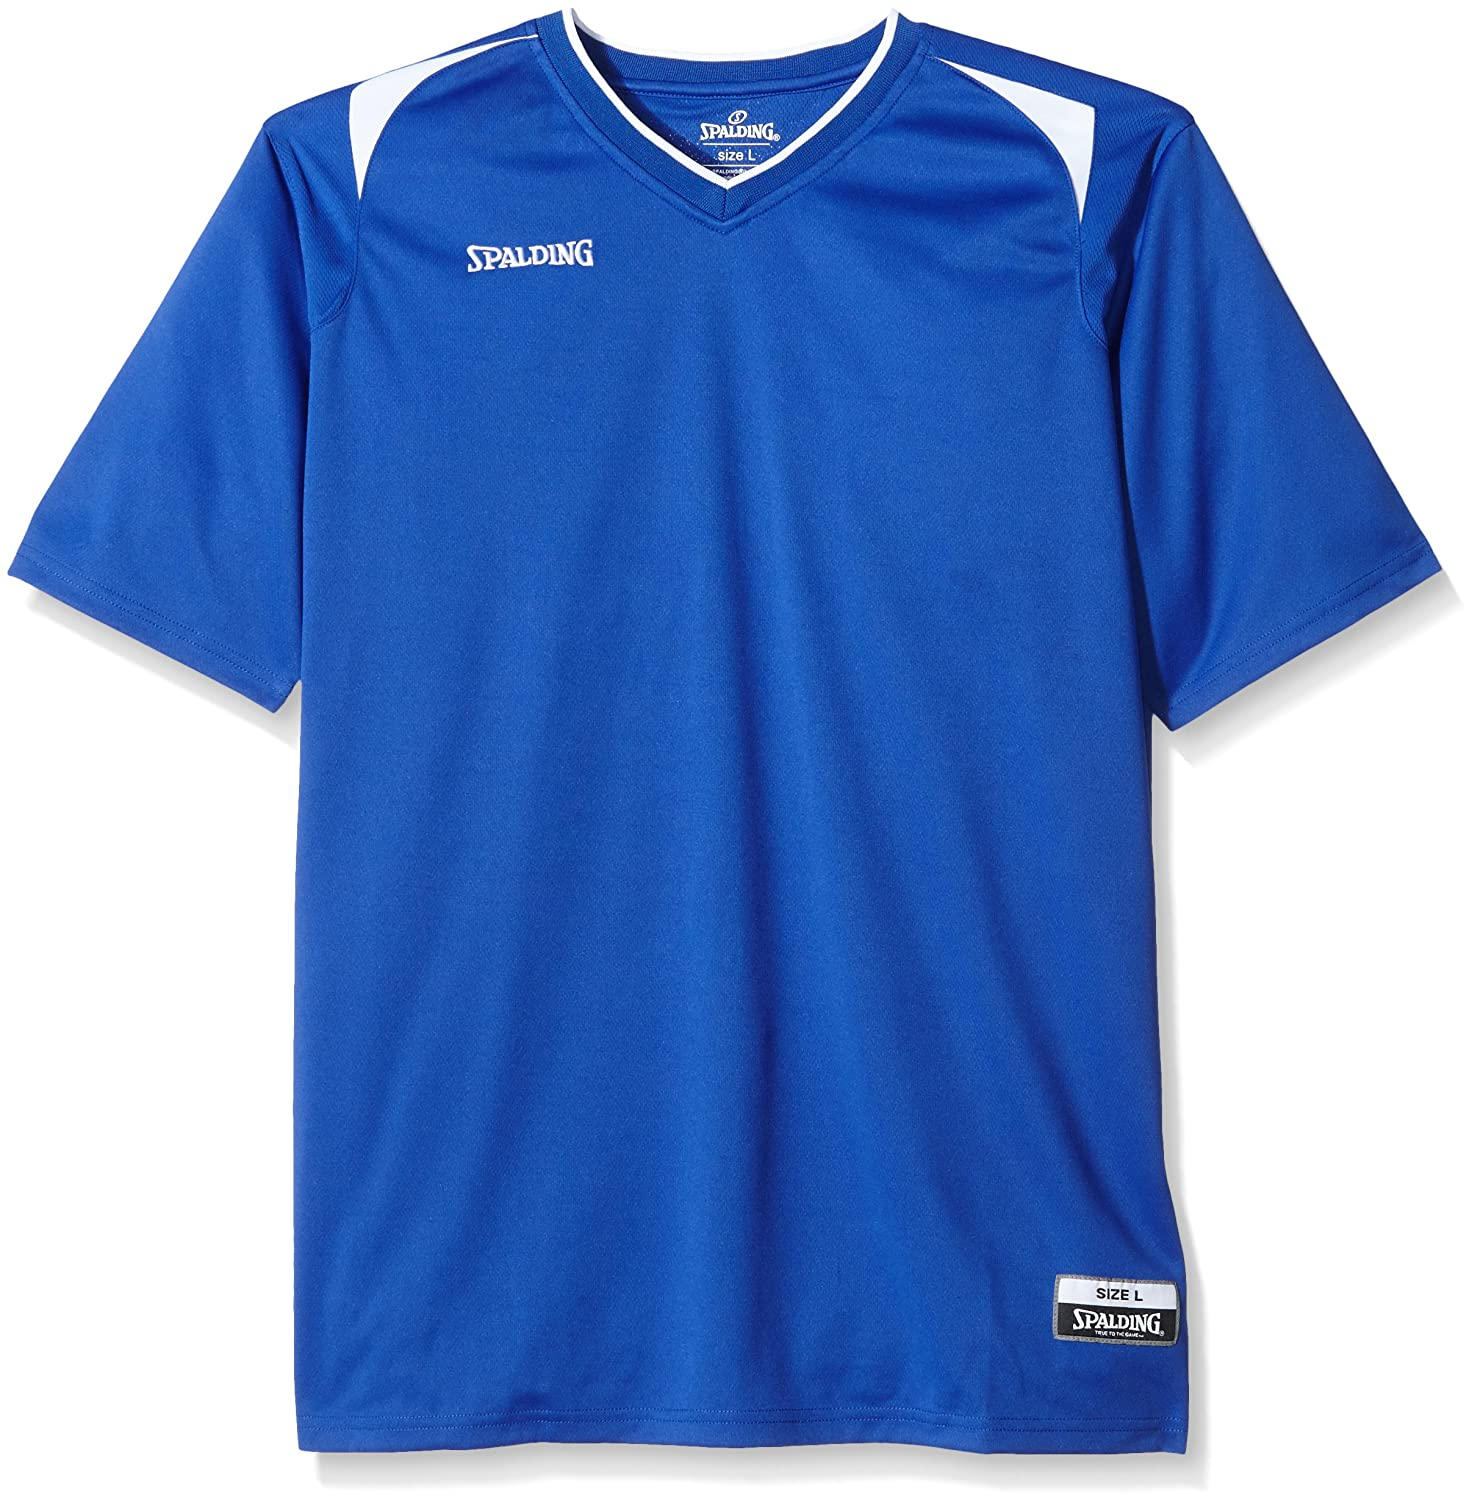 Spalding Bekleidung Teamsport Attack Shooting Shirt - Camiseta de running para hombre 30021160